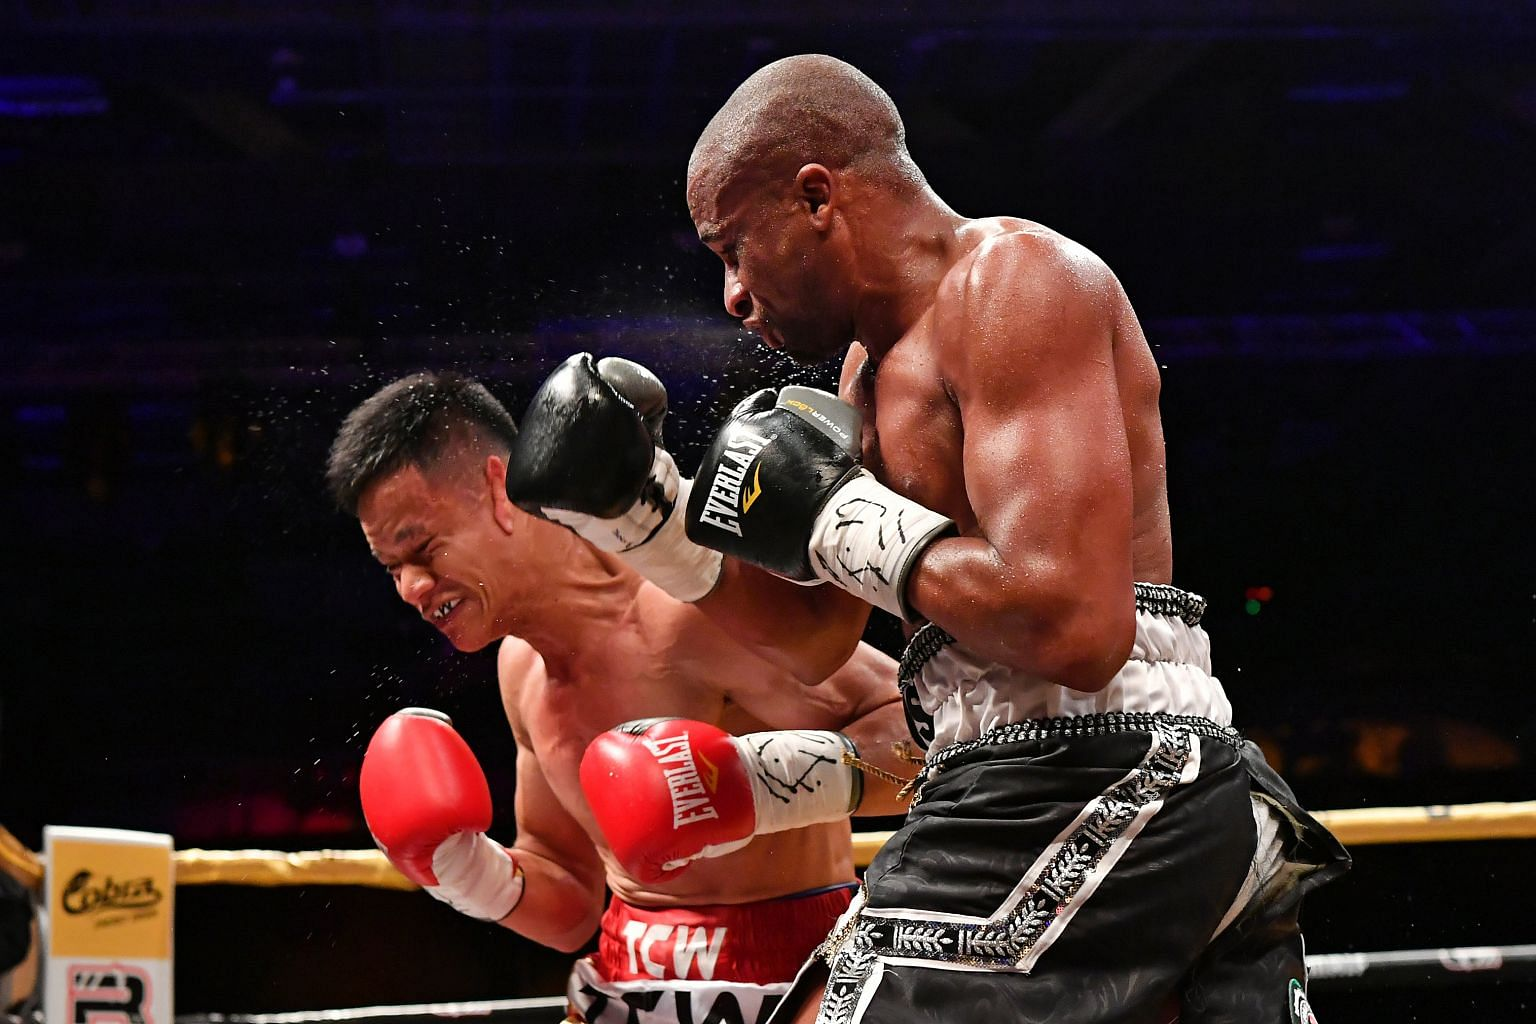 Muhamad Ridhwan taking a blow from Paulus Ambunda during their International Boxing Organisation super bantamweight world title bout last September. The Namibian won by a split decision, and the Singaporean will be keen to set the record straight whe